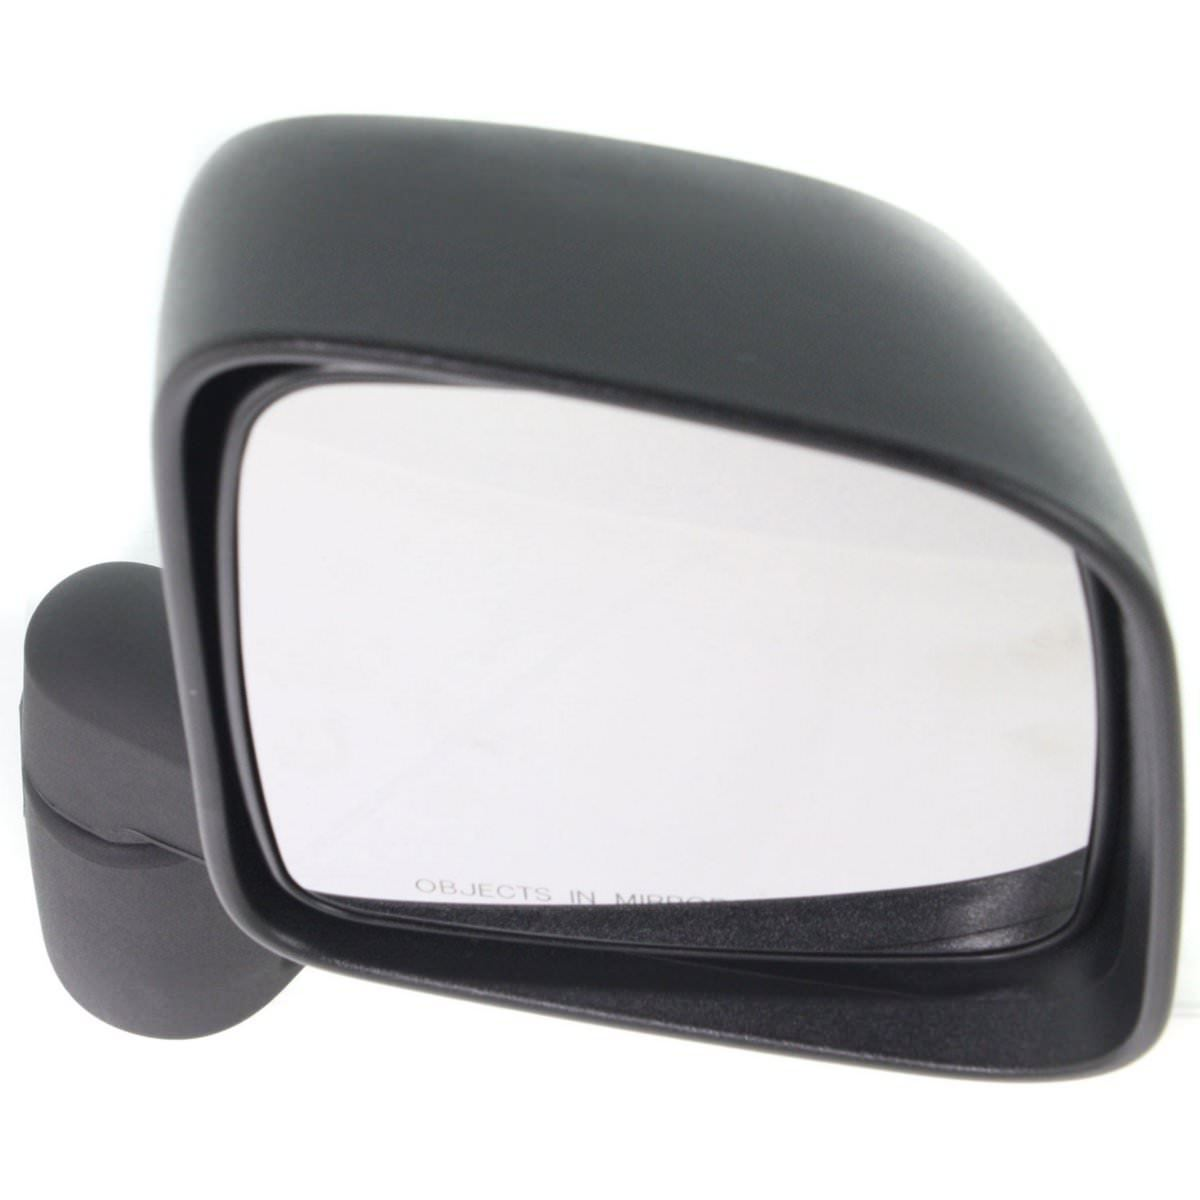 NEW RIGHT MANUAL MIRROR TEXTURED BLACK FOR 2003-2006 JEEP WRANGLER CH1321234